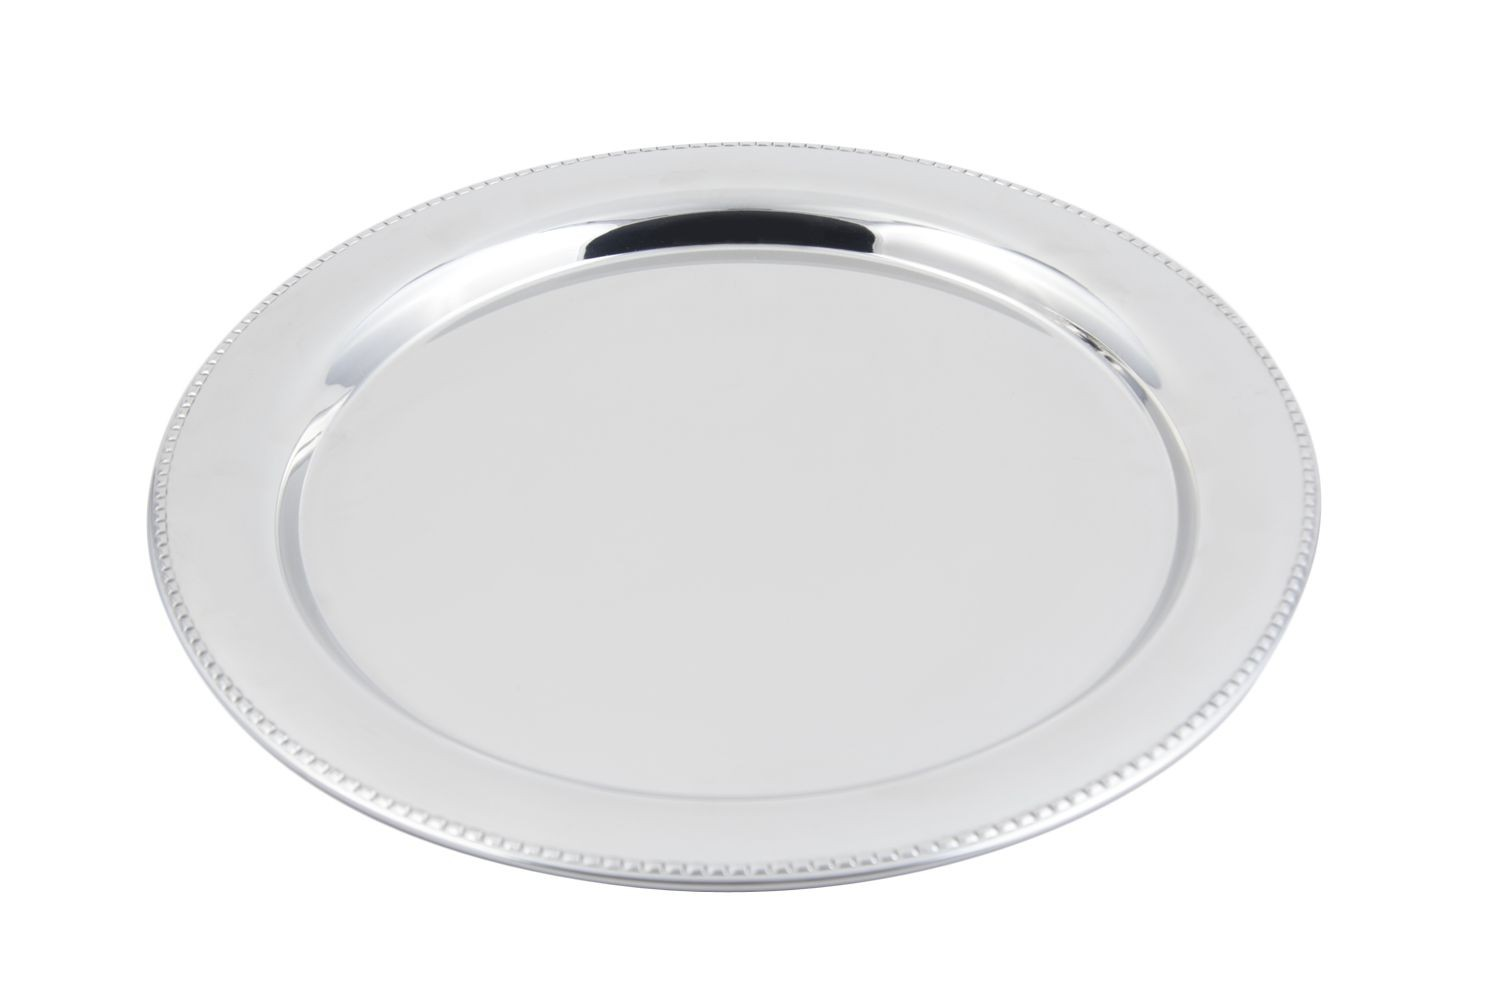 "Bon Chef 61330 Stainless Steel Round Tray with Bead Border, 13"" Dia."